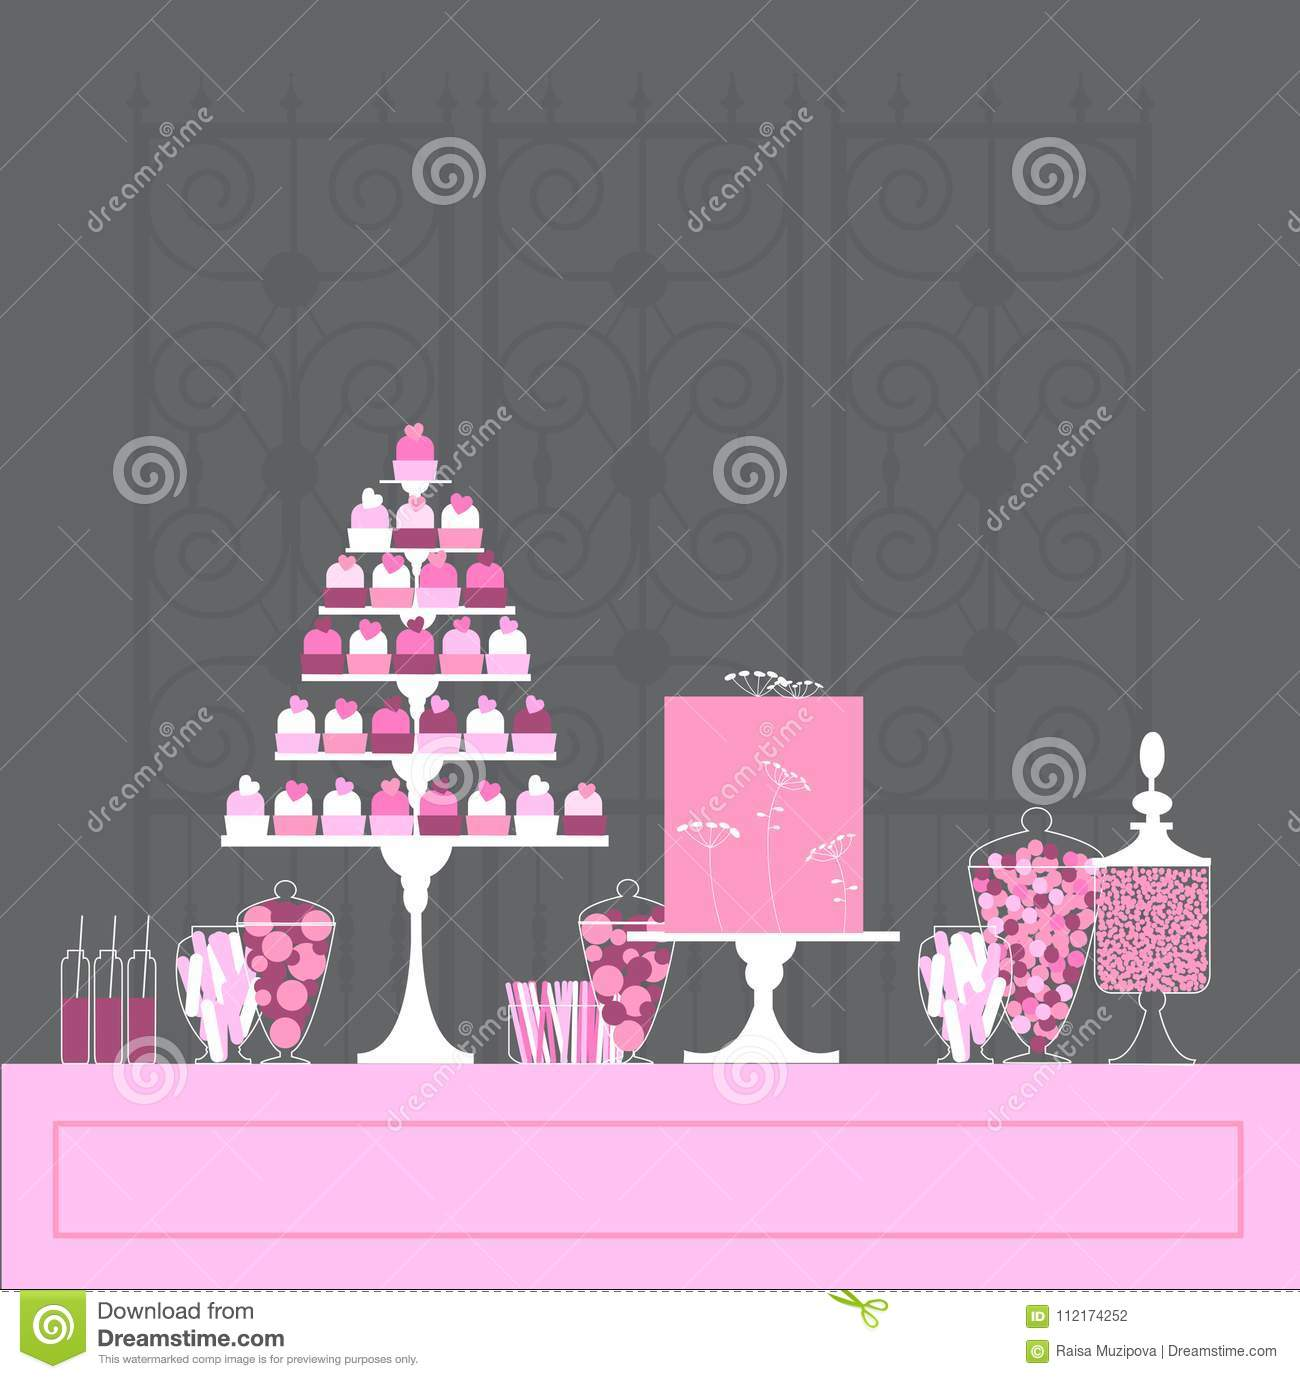 Candy buffet with cupcakes and cake stock vector illustration of download candy buffet with cupcakes and cake stock vector illustration of love illustration watchthetrailerfo